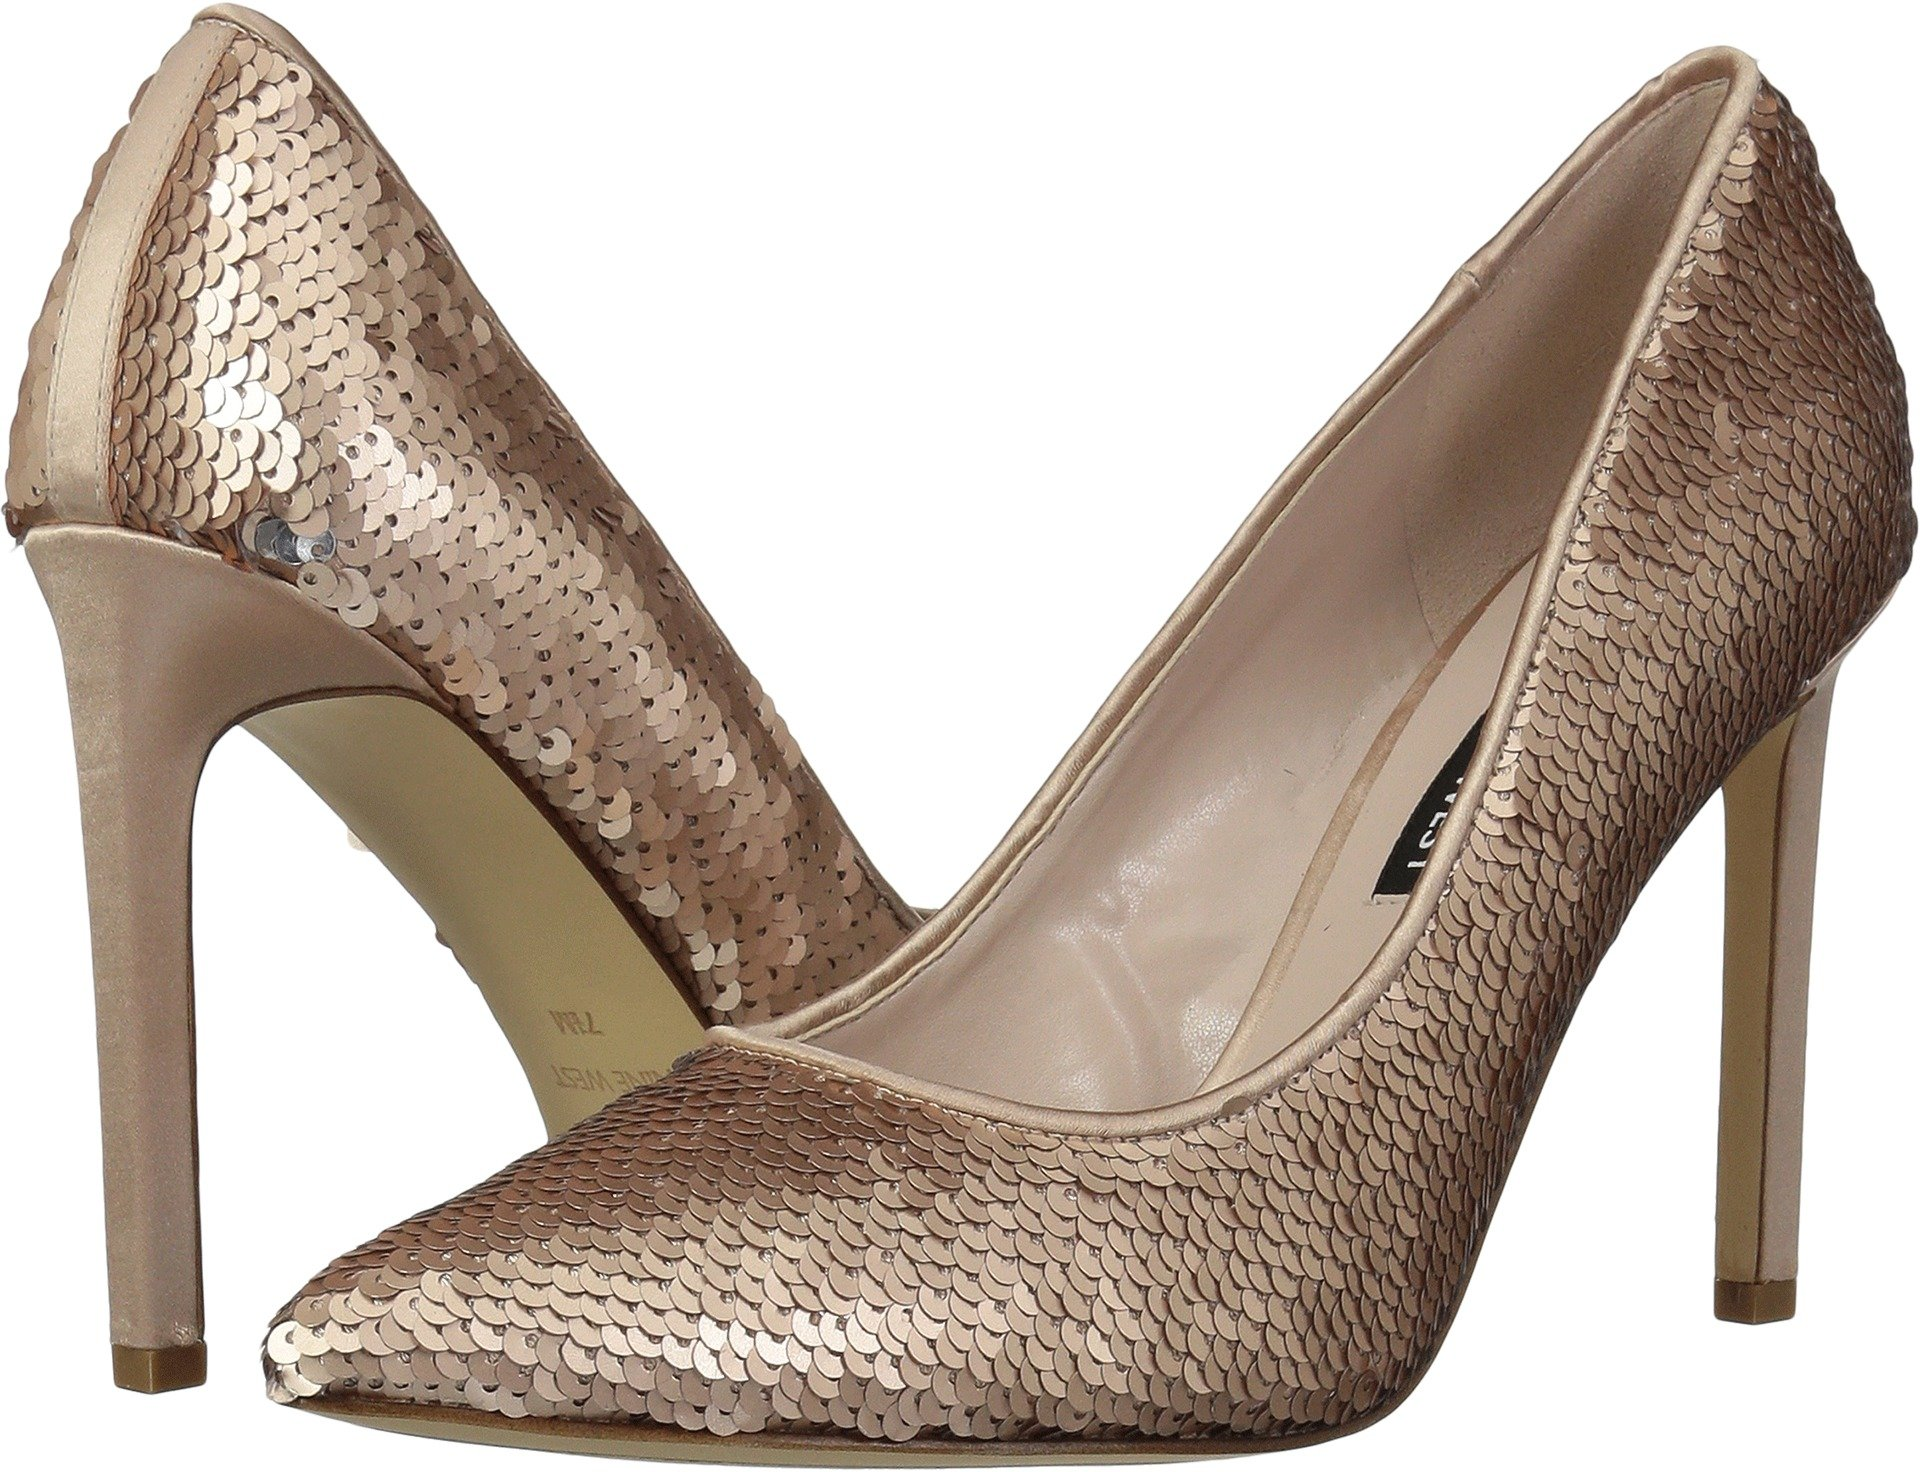 Nine West Women's Tatiana Pump Pink/Silver Synthetic 5 M US